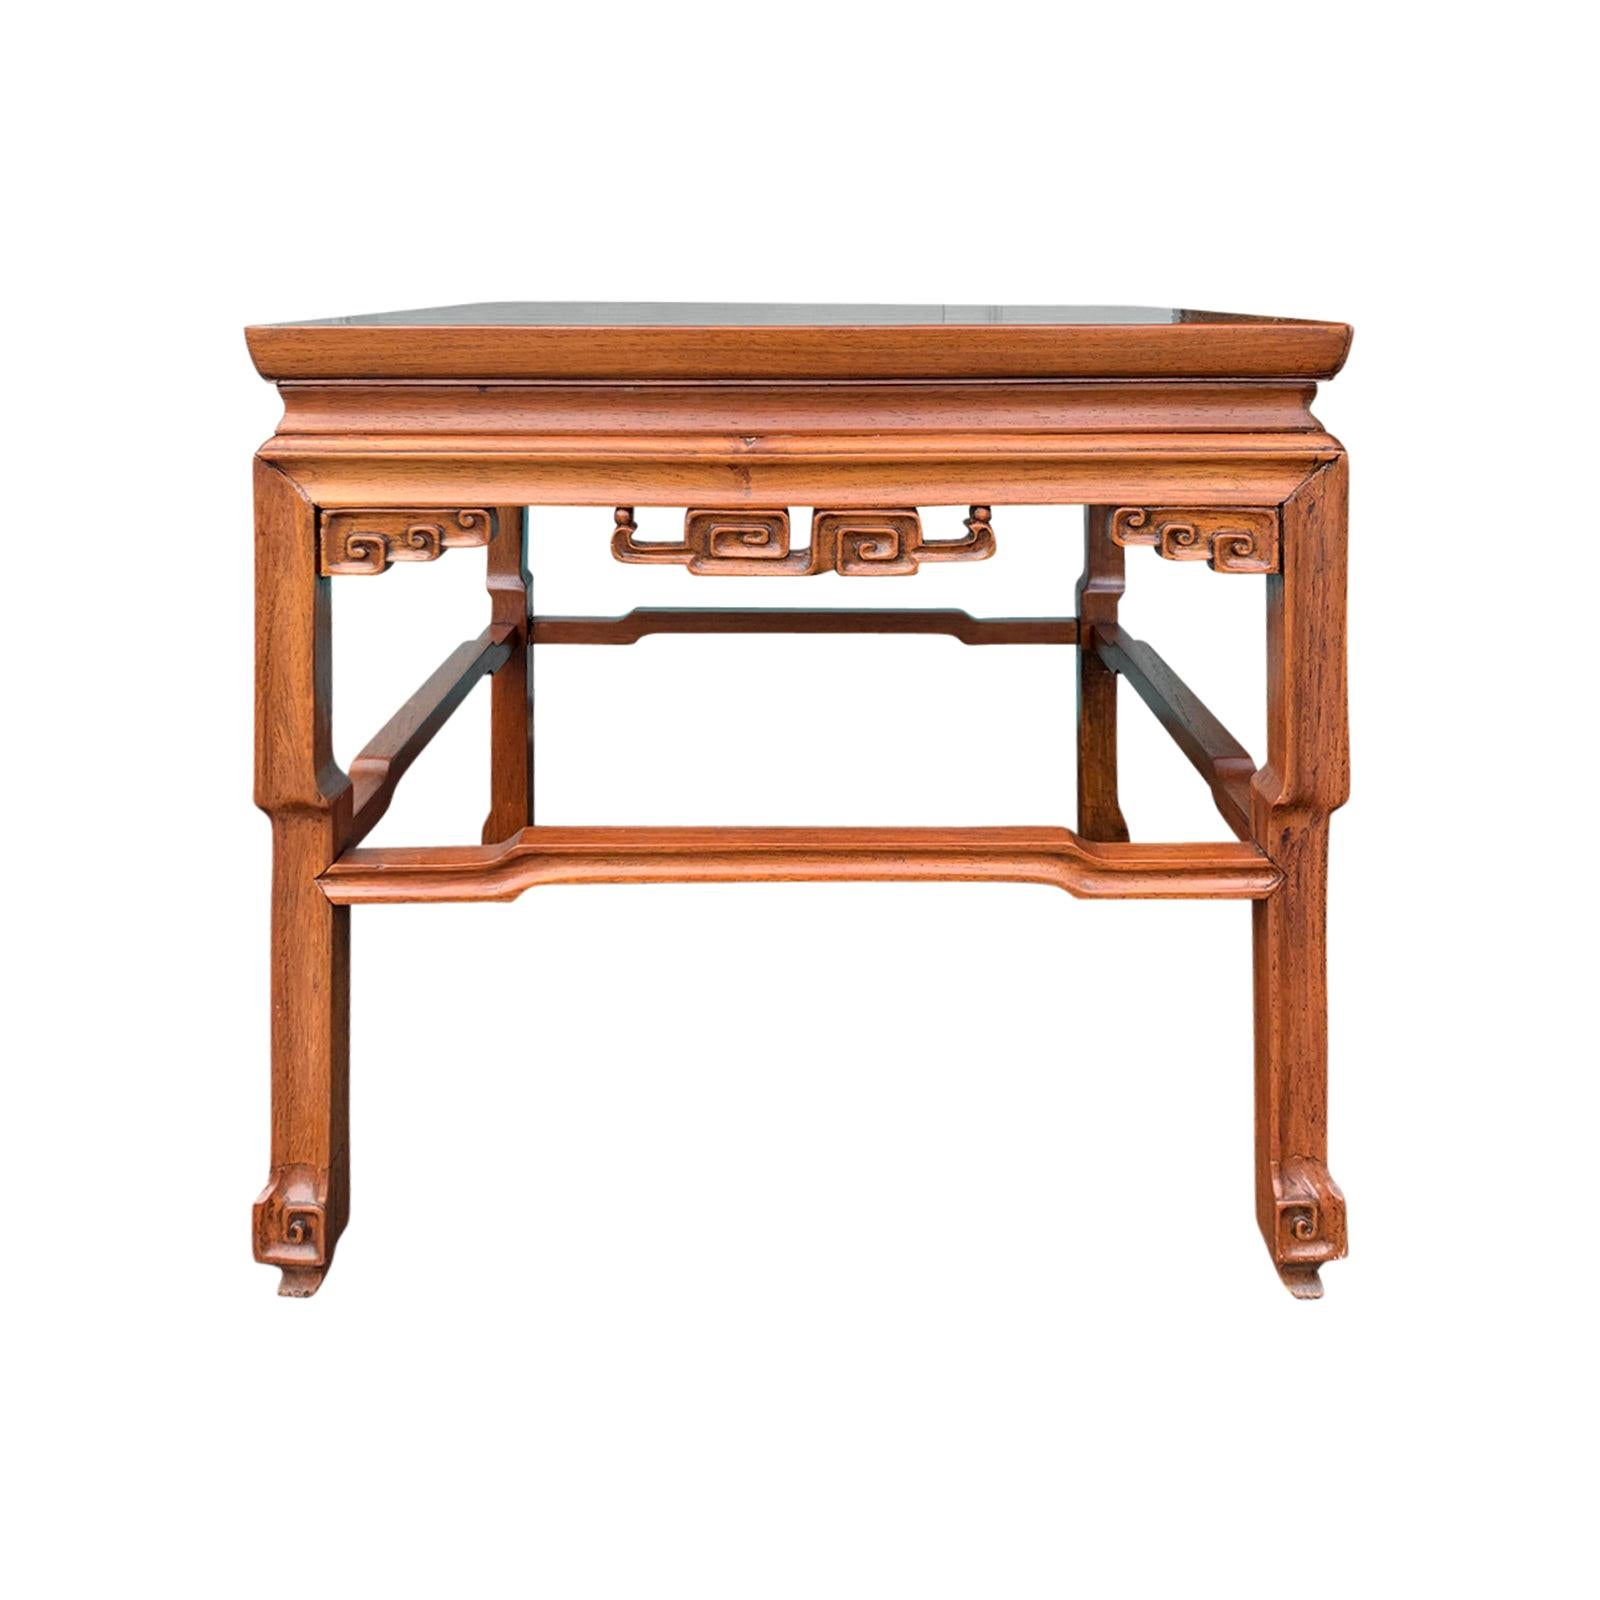 Small 19th Century Chinese Square Drinks or Coffee Table